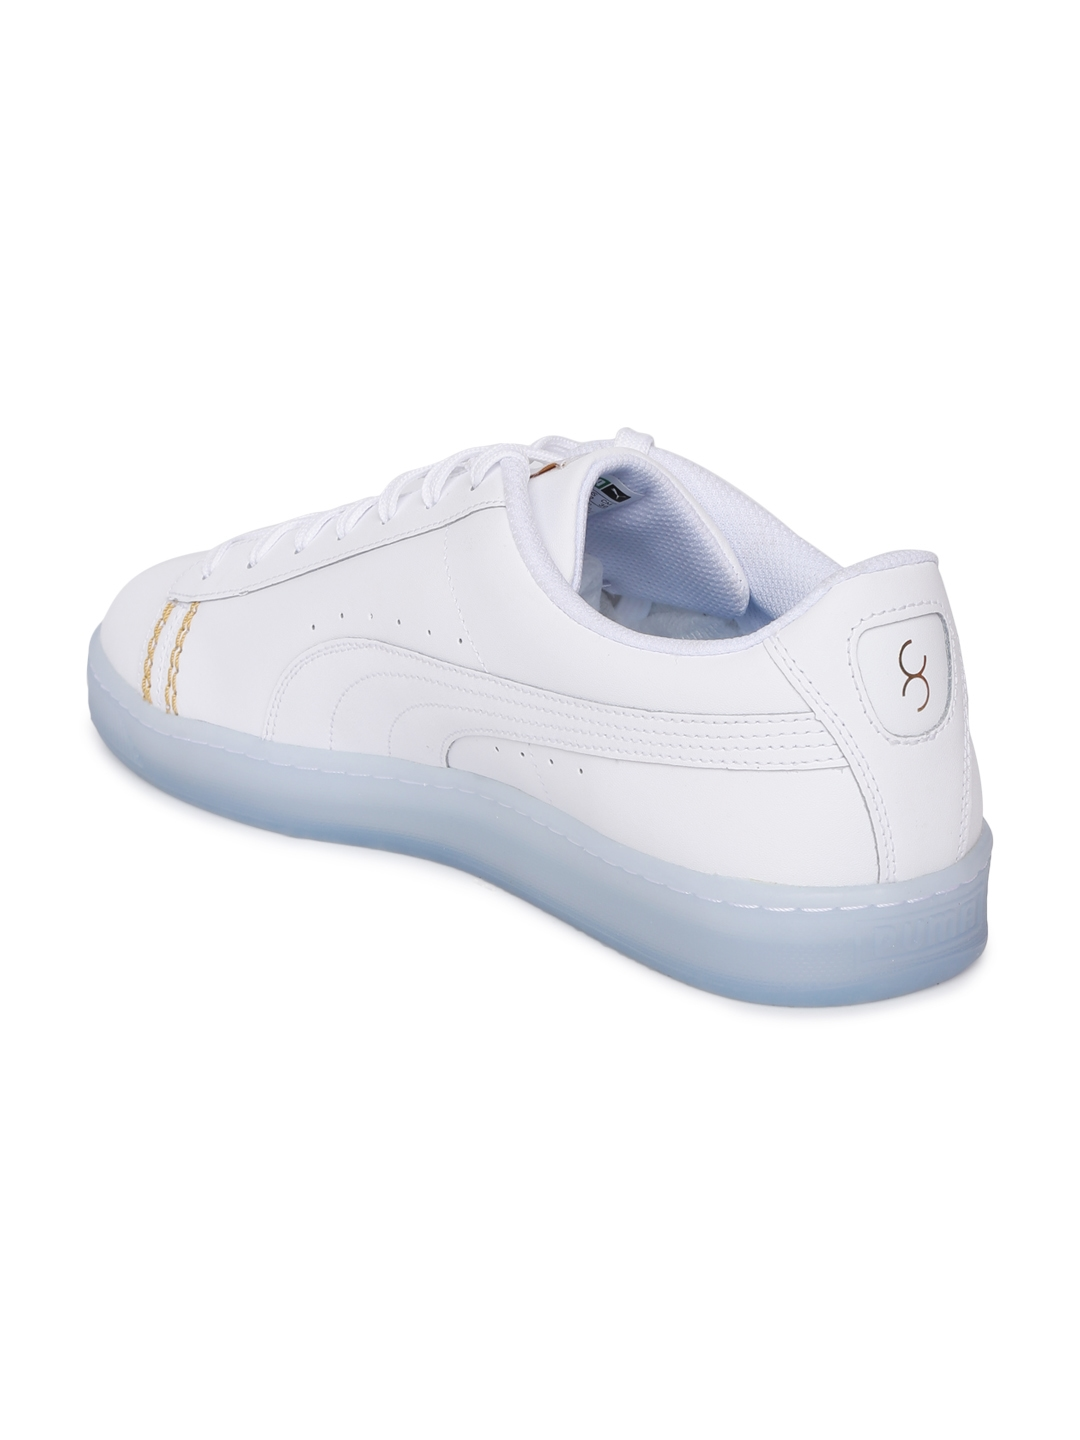 online retailer 72dea 89596 Buy Puma Unisex White Basket Classic One8 Sneakers - Casual ...